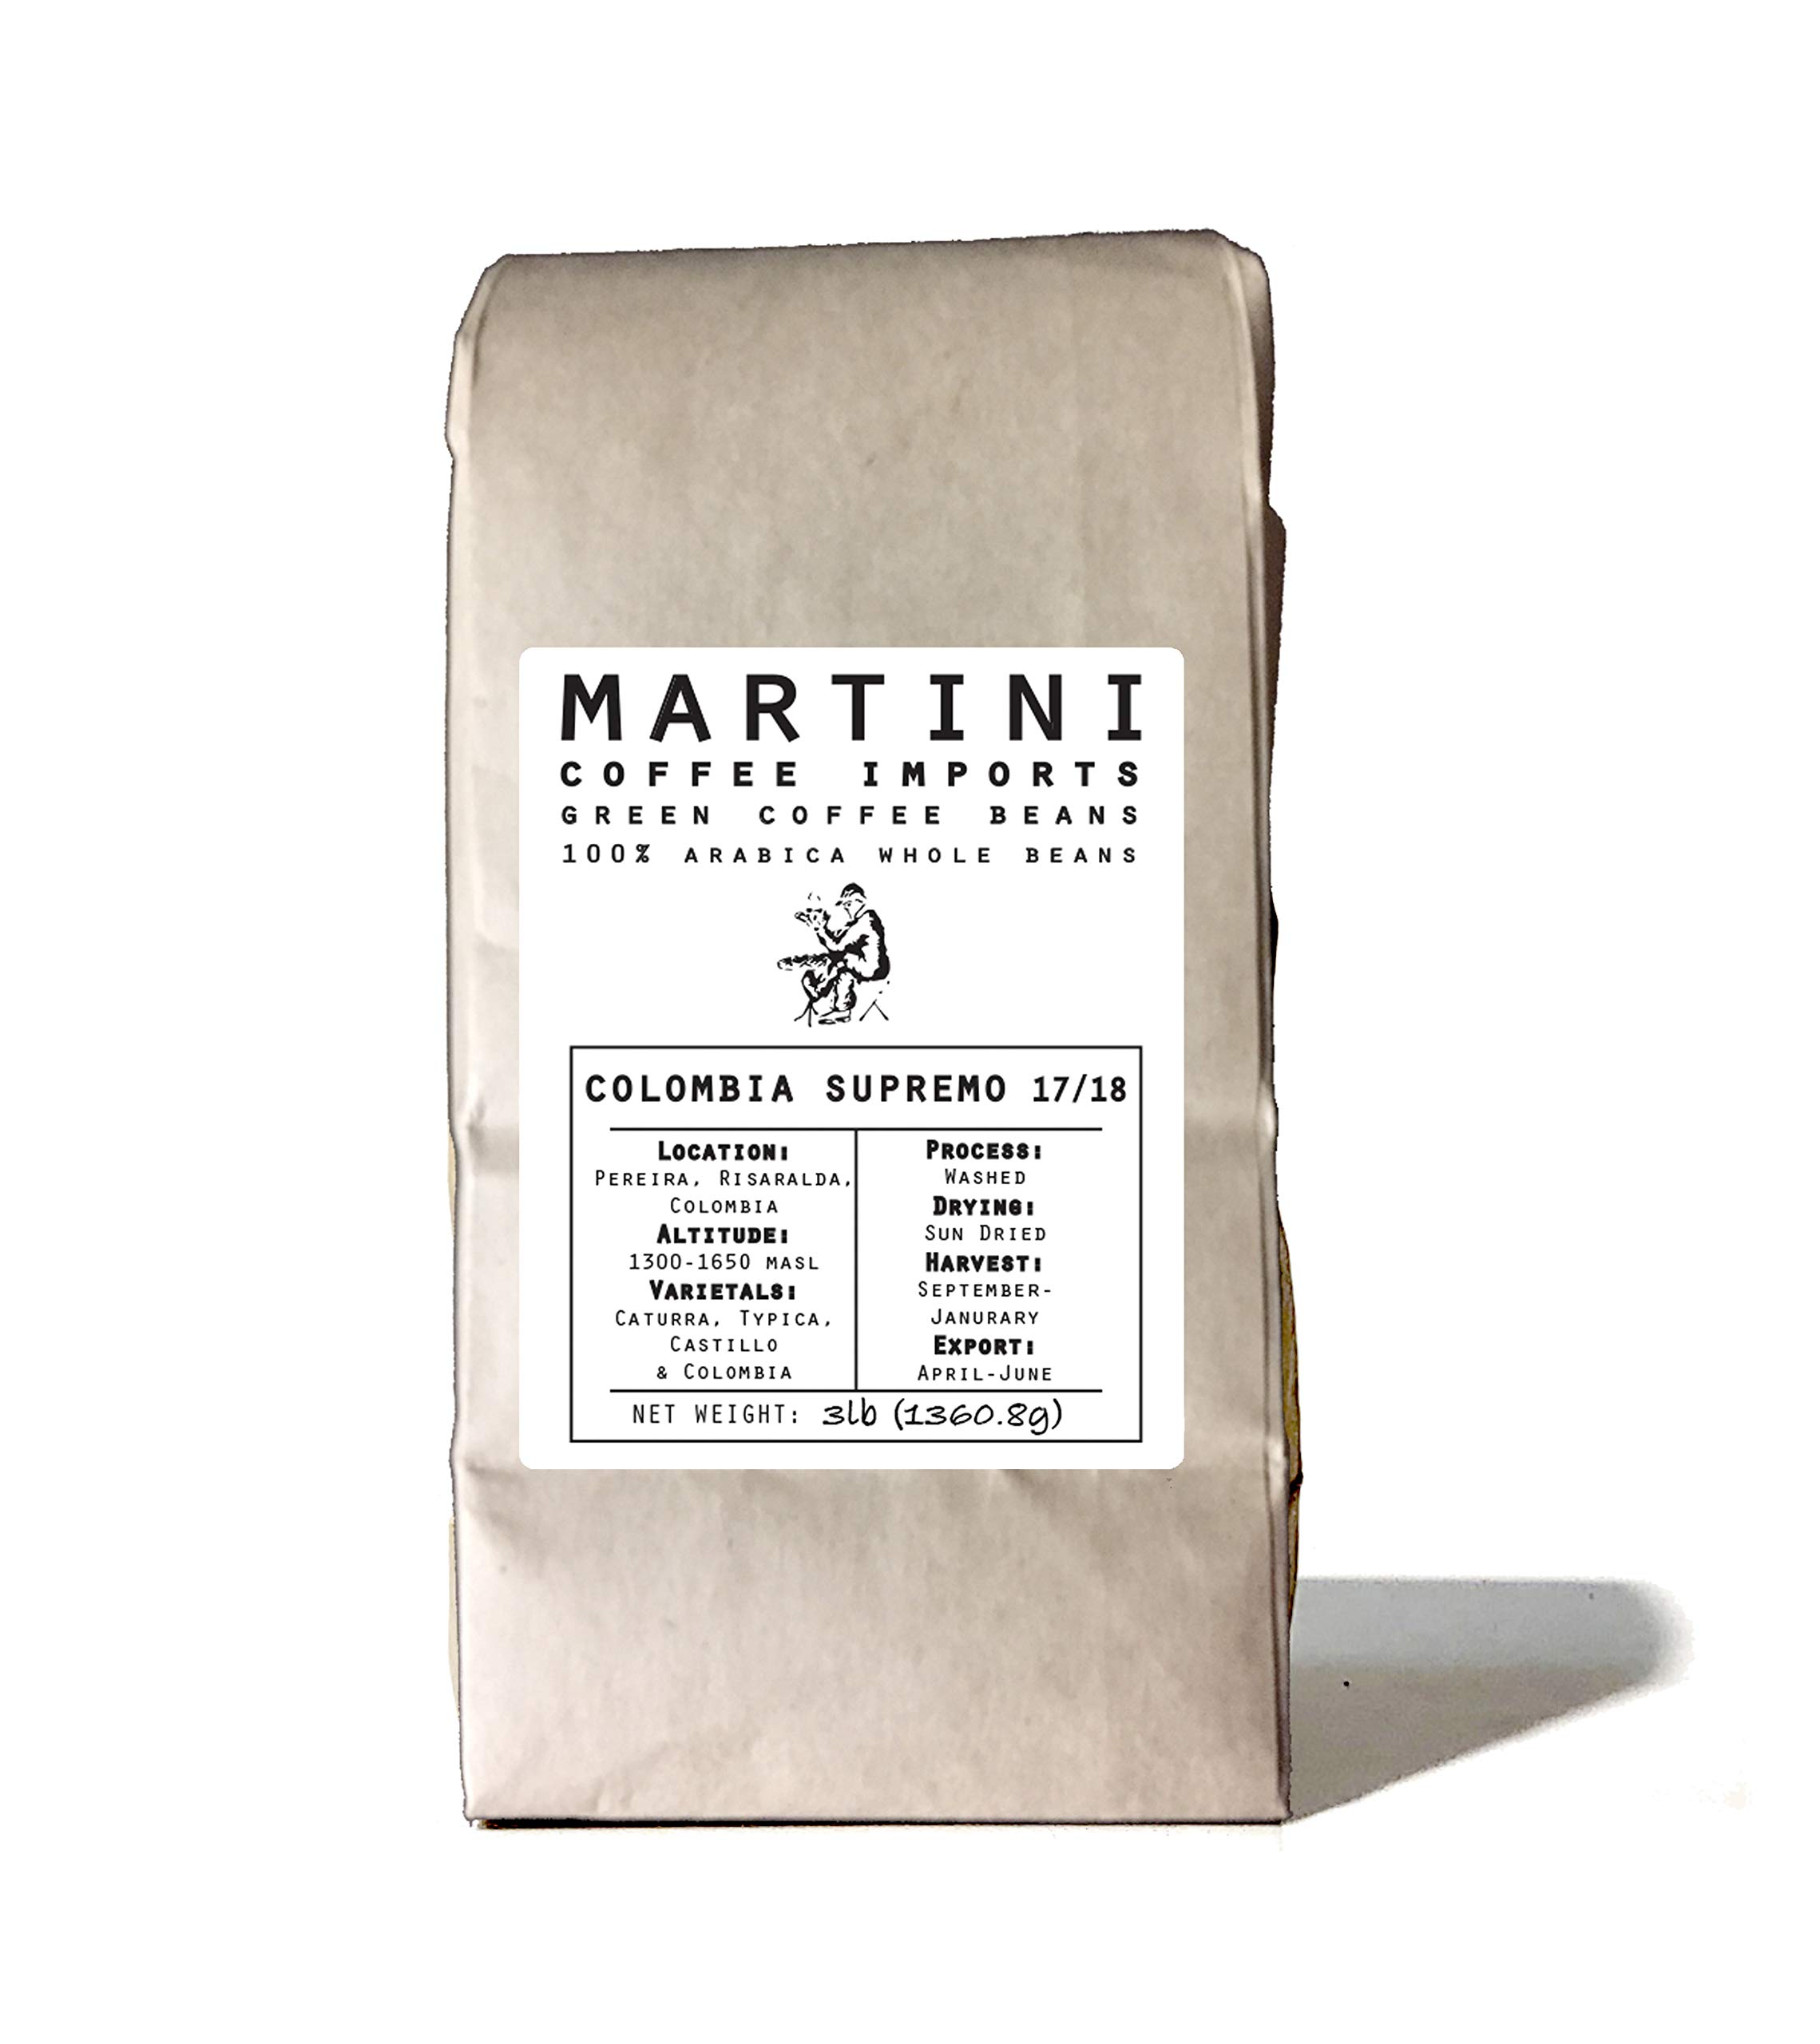 3Lbs, Single Origin Unroasted Green Coffee Beans, Colombia Supremo 17/18 by Martini Coffee Roasters